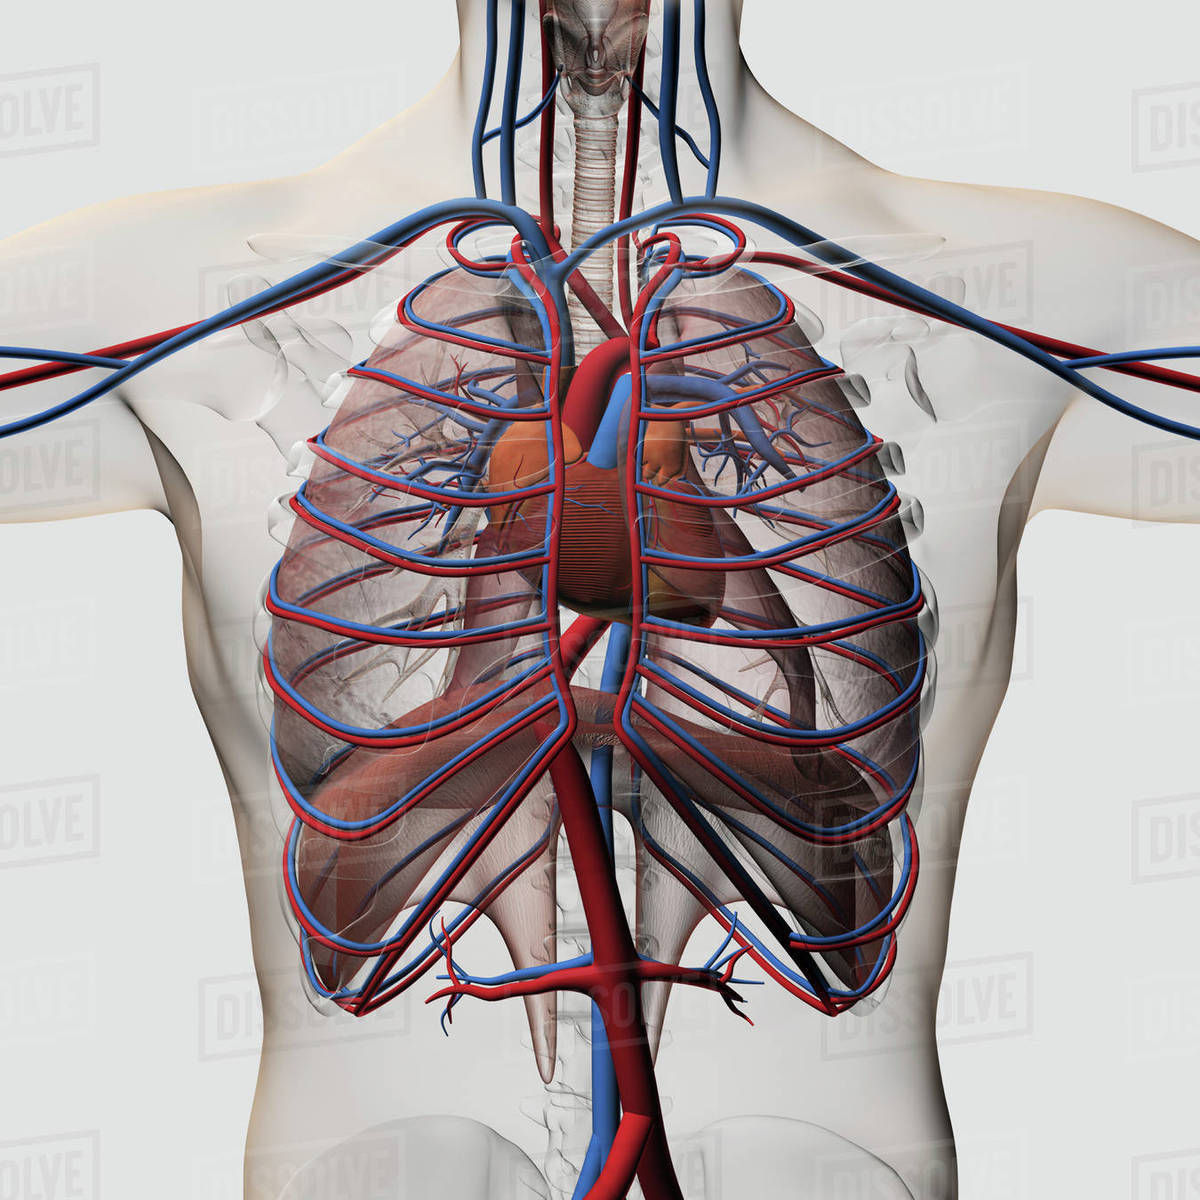 hight resolution of medical illustration of male chest with arteries veins heart and rib cage